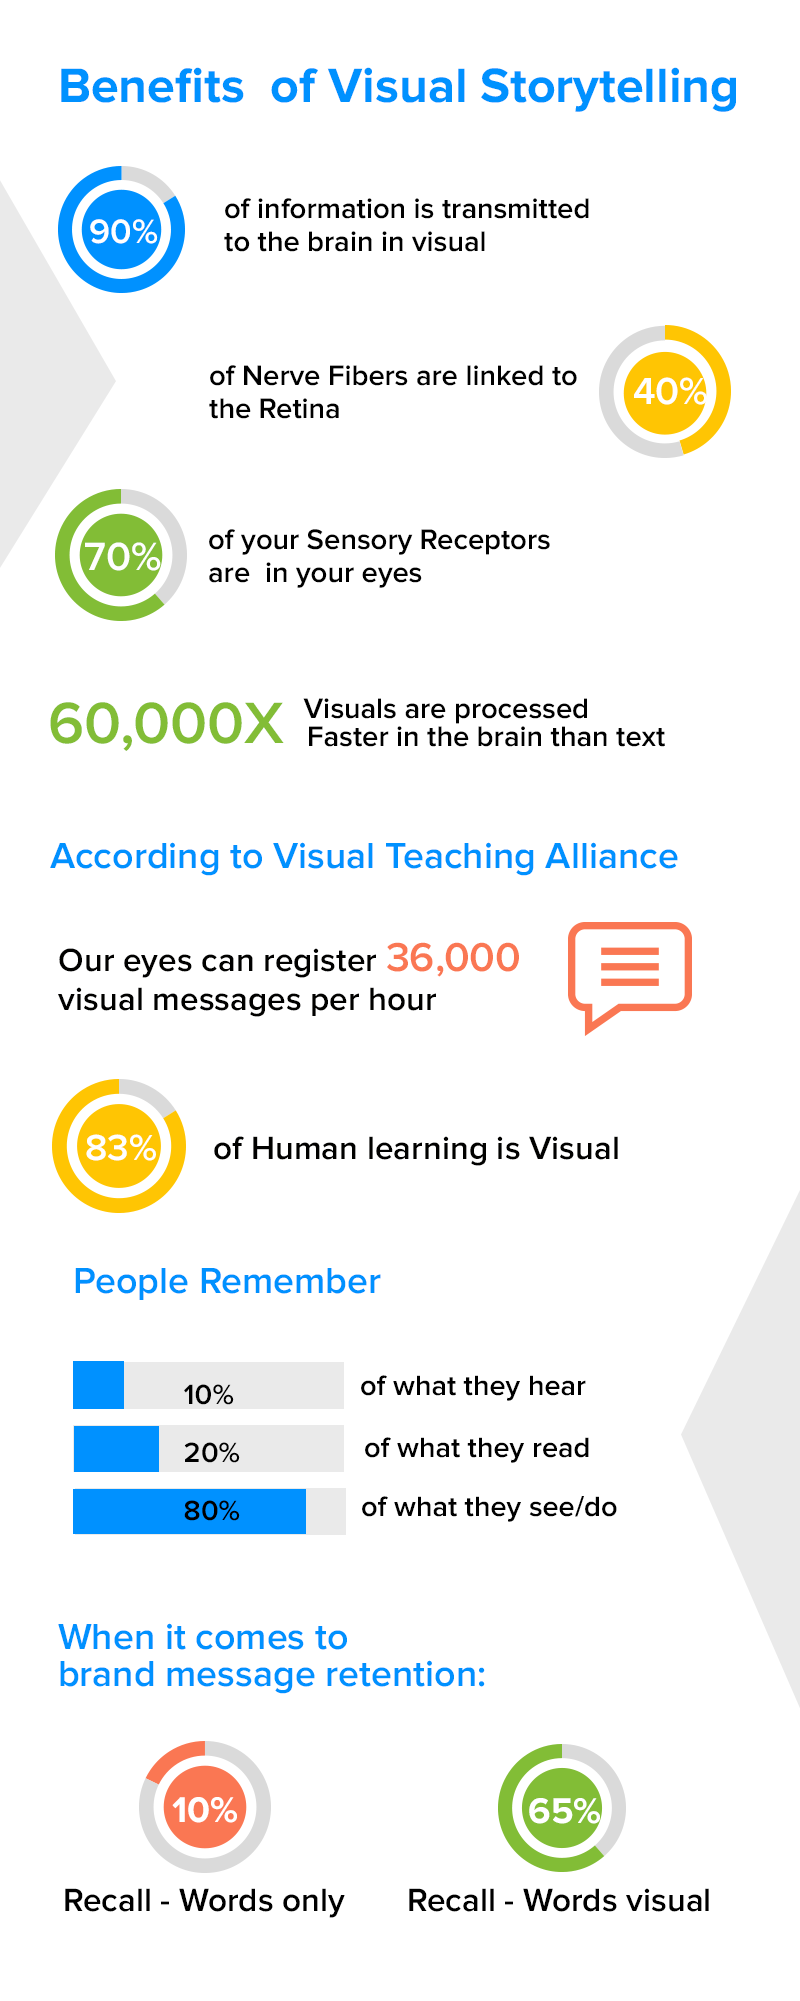 Why Is Visual Storytelling Important